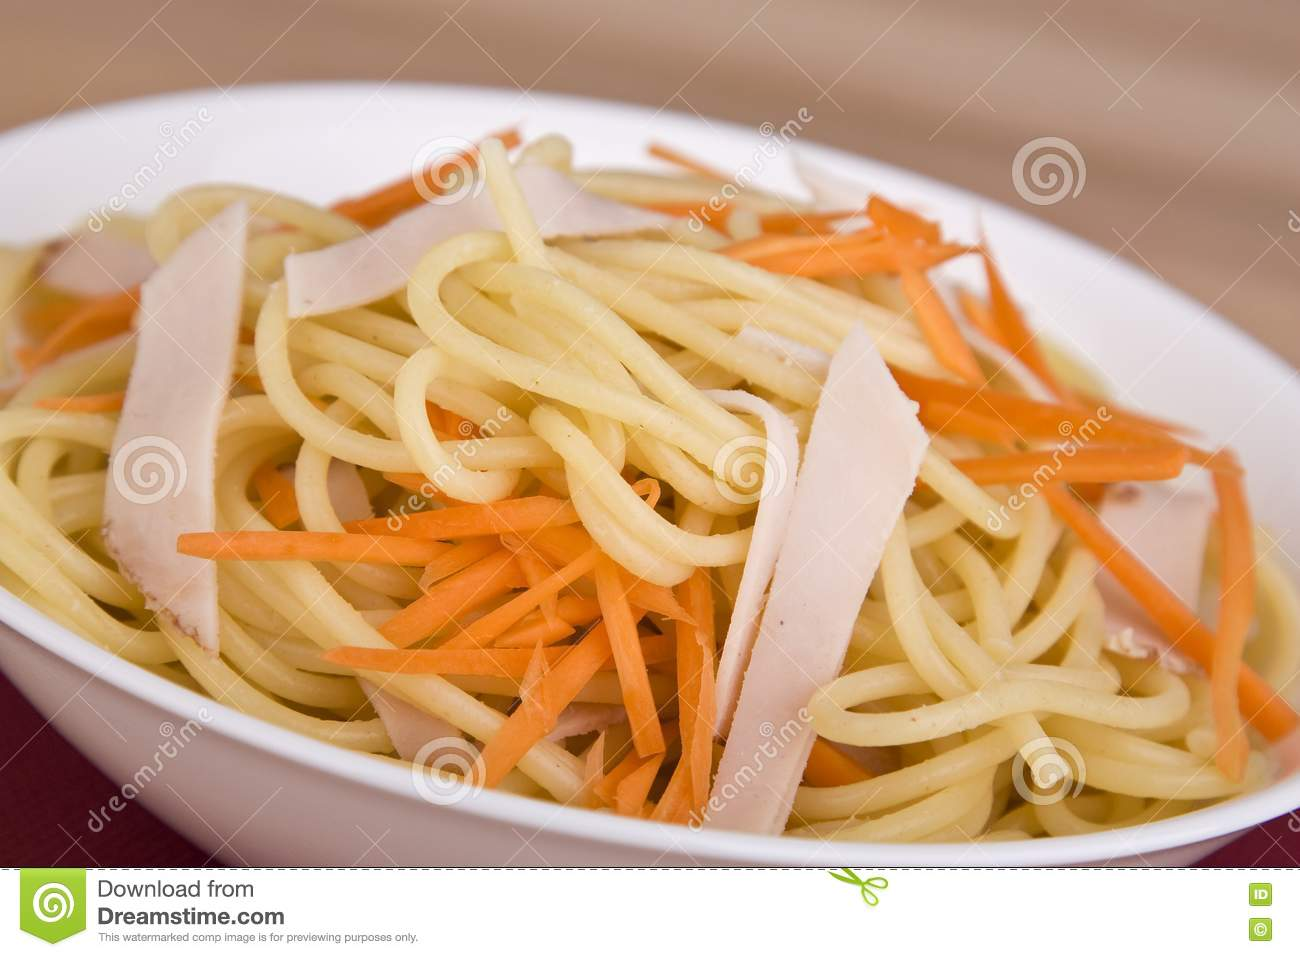 Stock Image: Pasta salad with carrot and meat